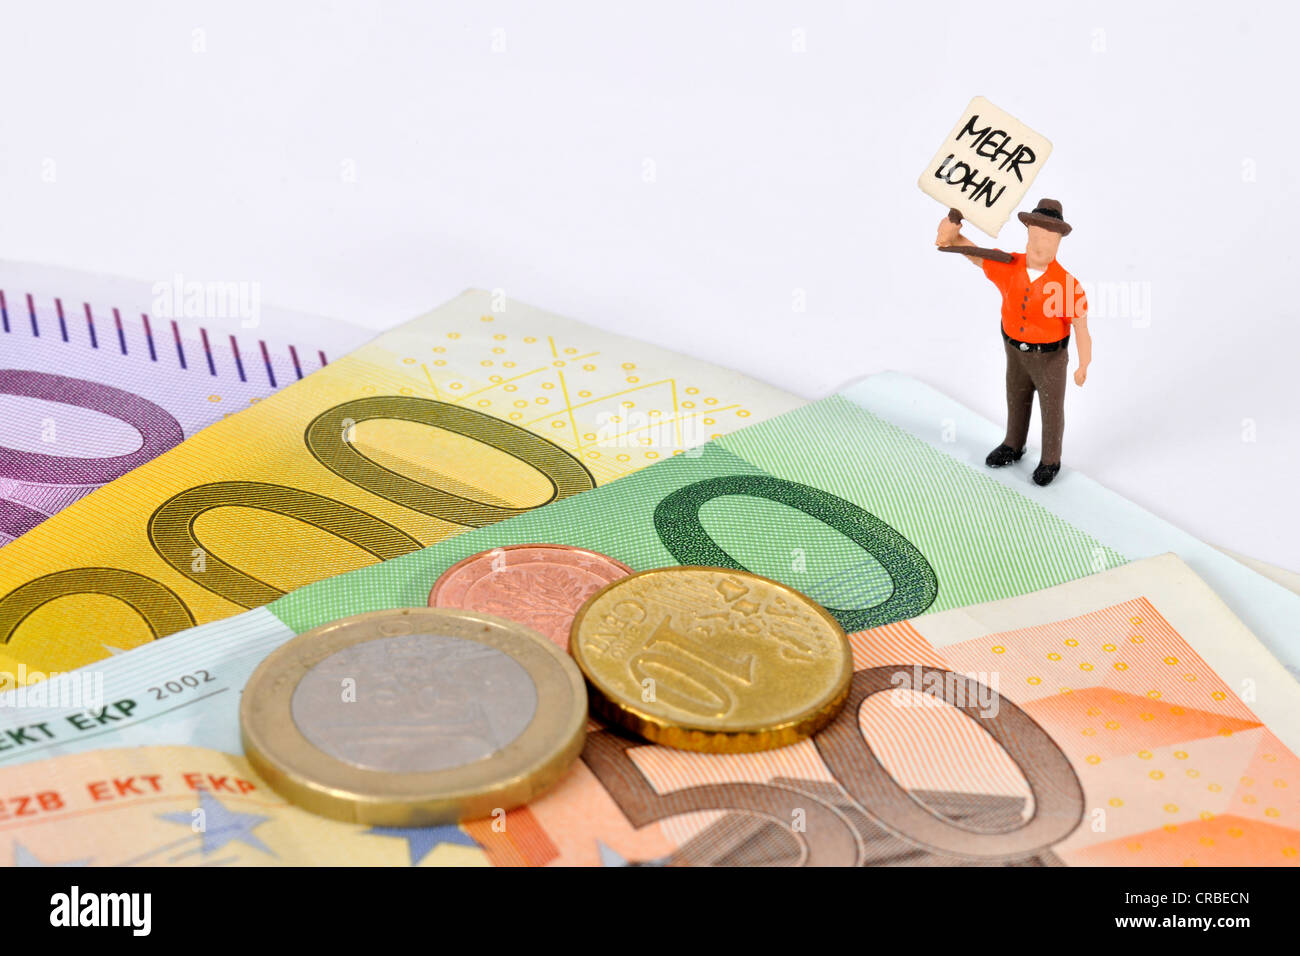 Miniature figurine holding a sign, Mehr Lohn, German for More Pay, beside euro banknotes and coins - Stock Image